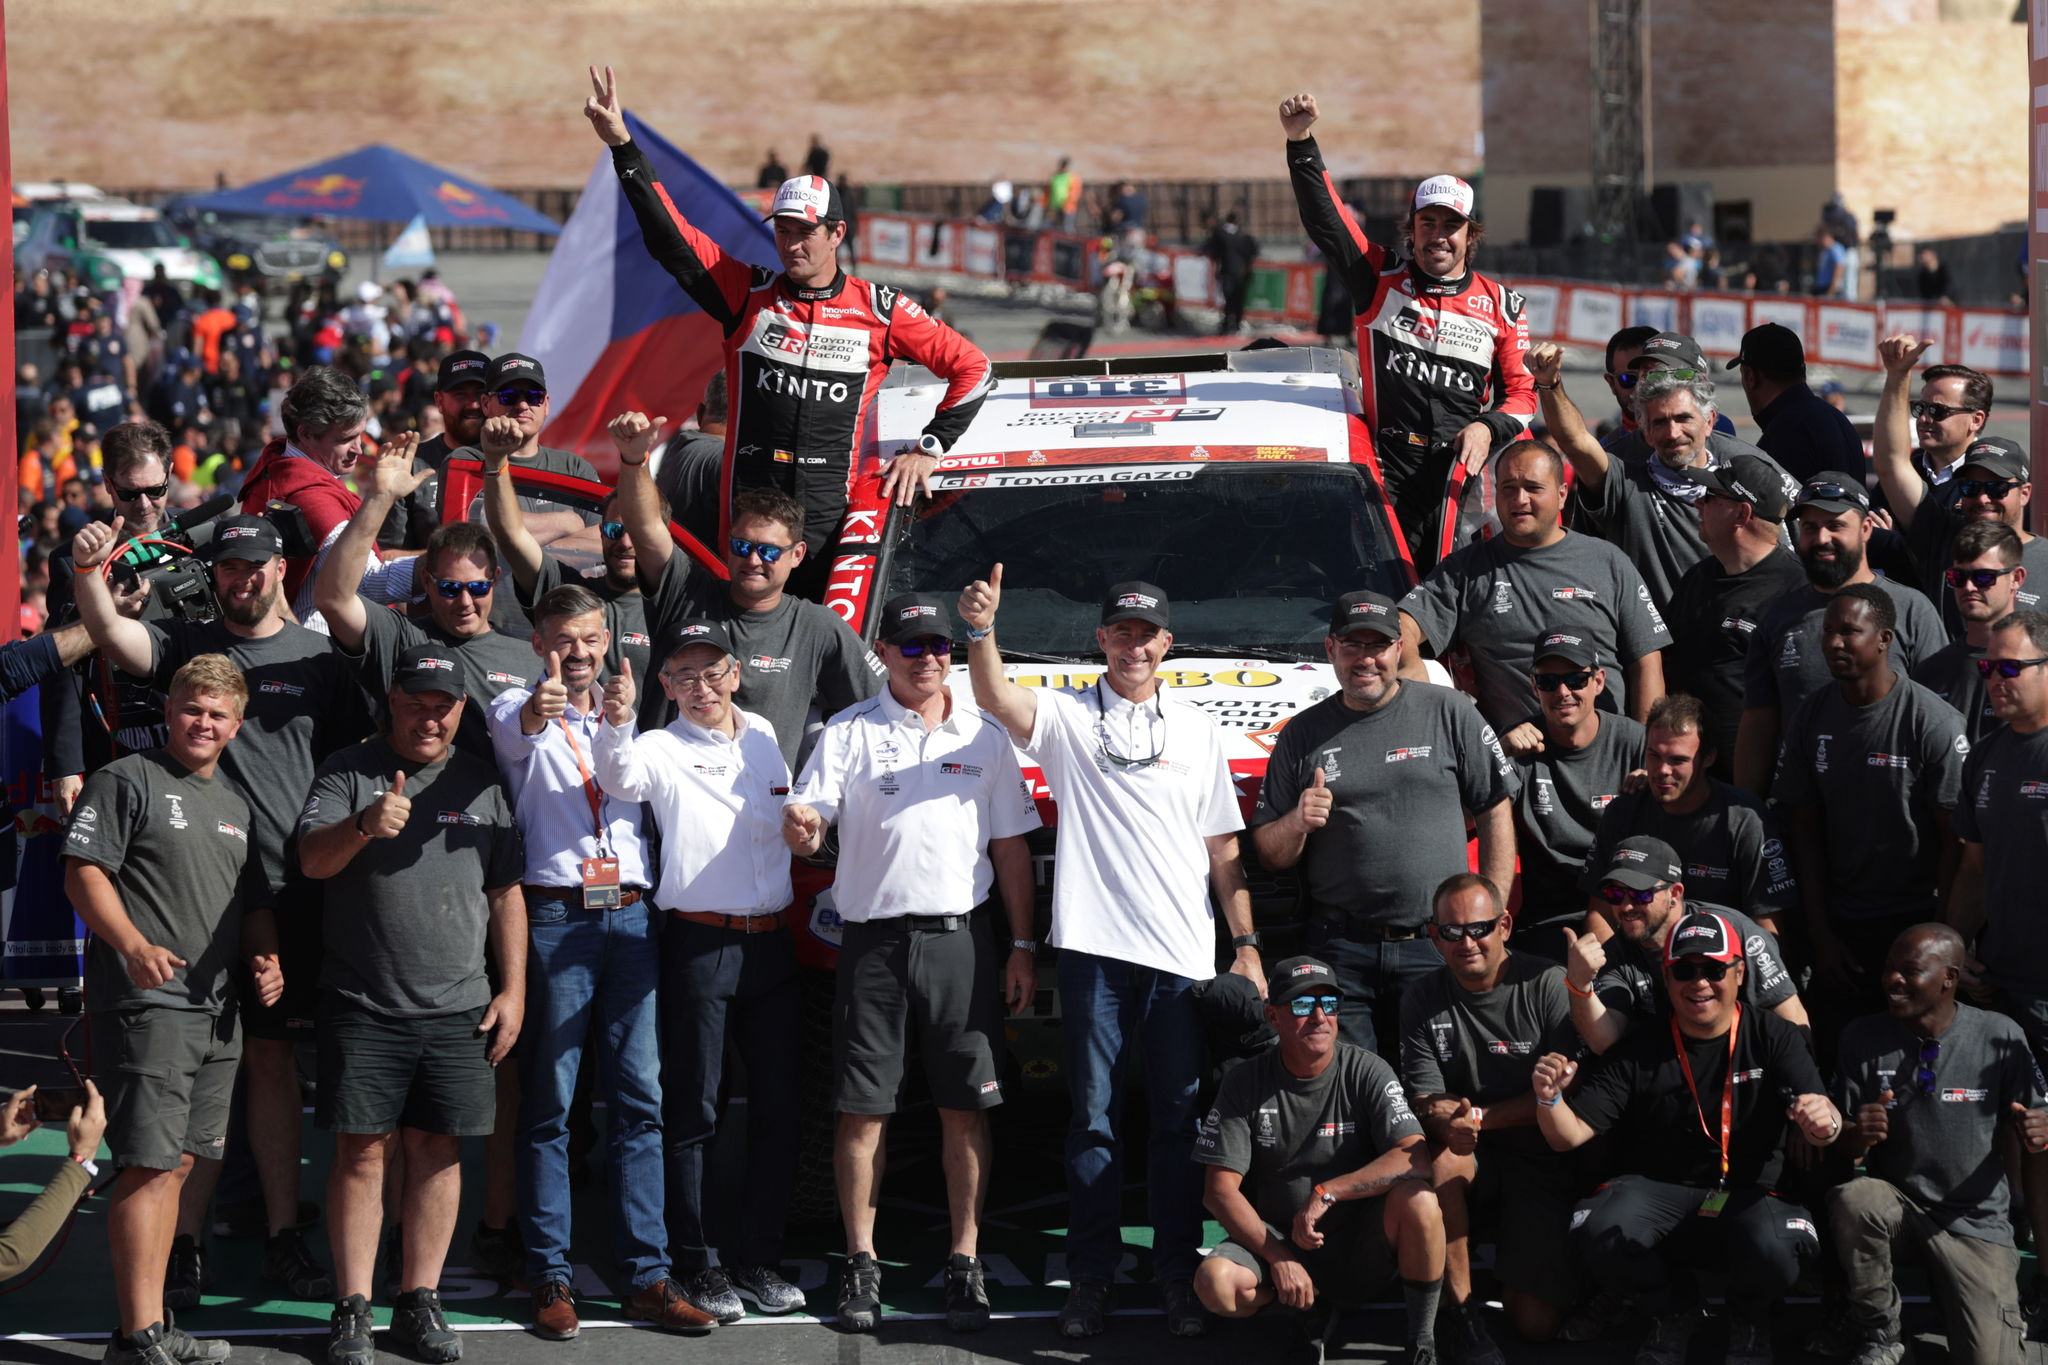 Qiddiya (Saudi Arabia), 17/01/2020.- Spanish Fernando <HIT>Alonso</HIT> (top R) and co-pilot Marc Coma of Toyota Gazoo Racing shake celebrate at the end of the final stage 12 of the Rally Dakar 2020 between Shubaytah and Qiddiya, in Saudi Arabia, 17 January 2020. <HIT>Alonso</HIT> and Coma placed 13th in the overall standings of the Car category. (Arabia Saudita) EFE/EPA/ANDRE PAIN